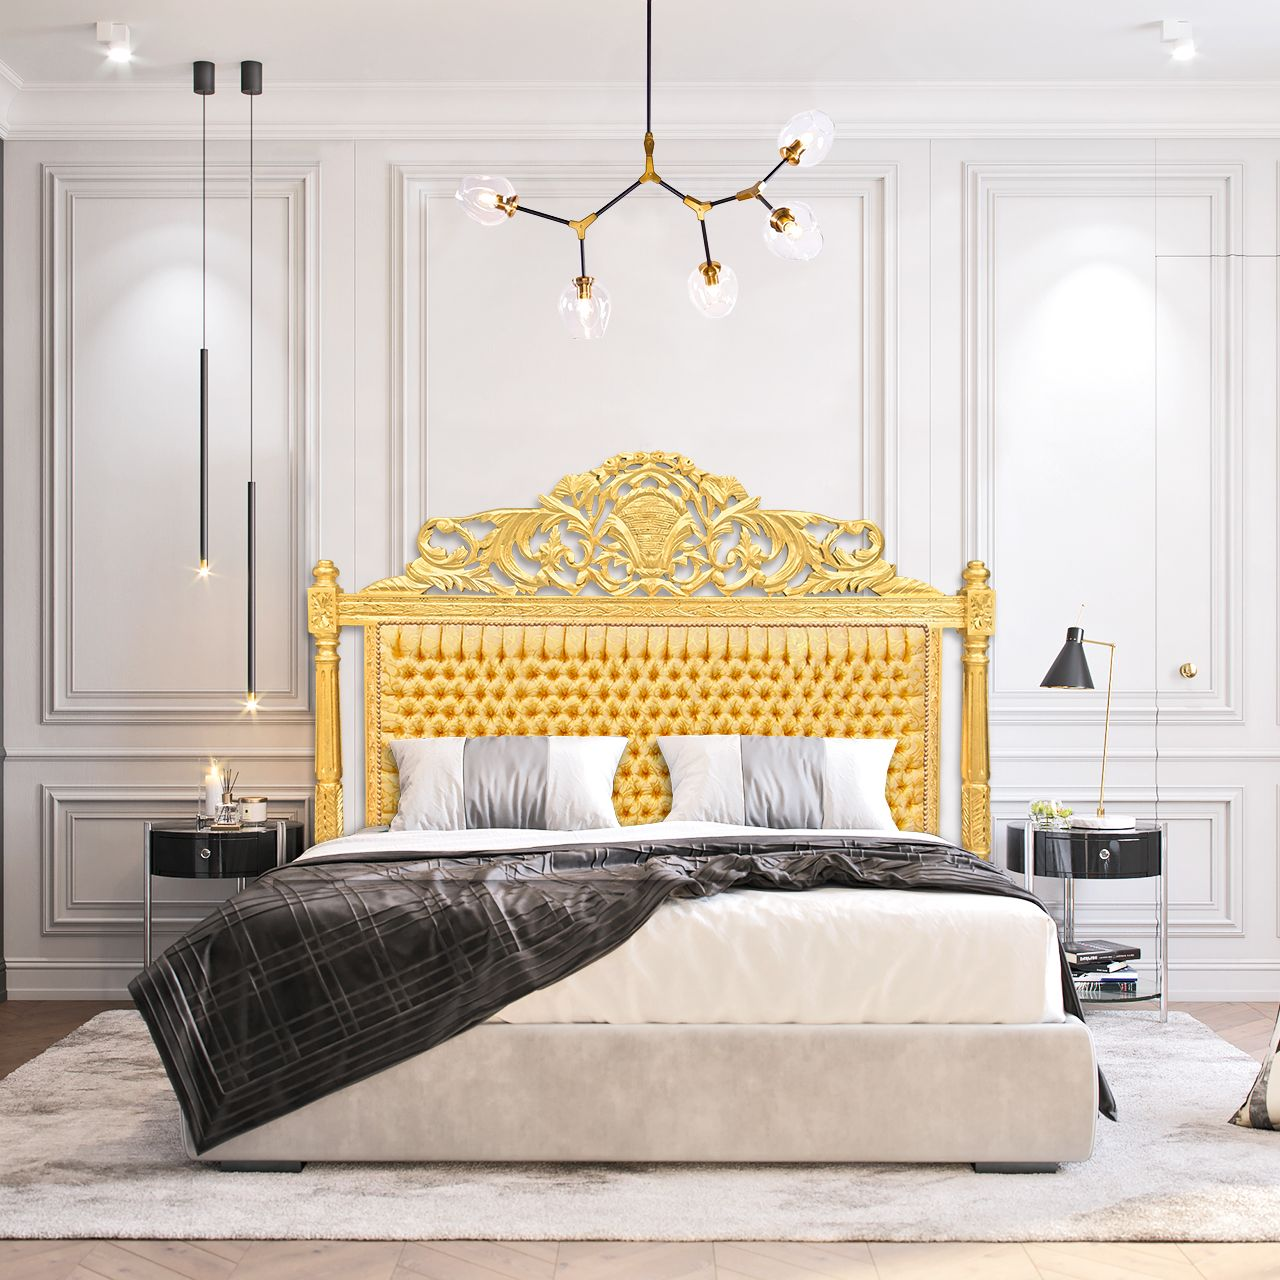 Baroque Headboard Gold Satine Fabric And Gold Wood Headboards For Beds Gold Wood Baroque Bed